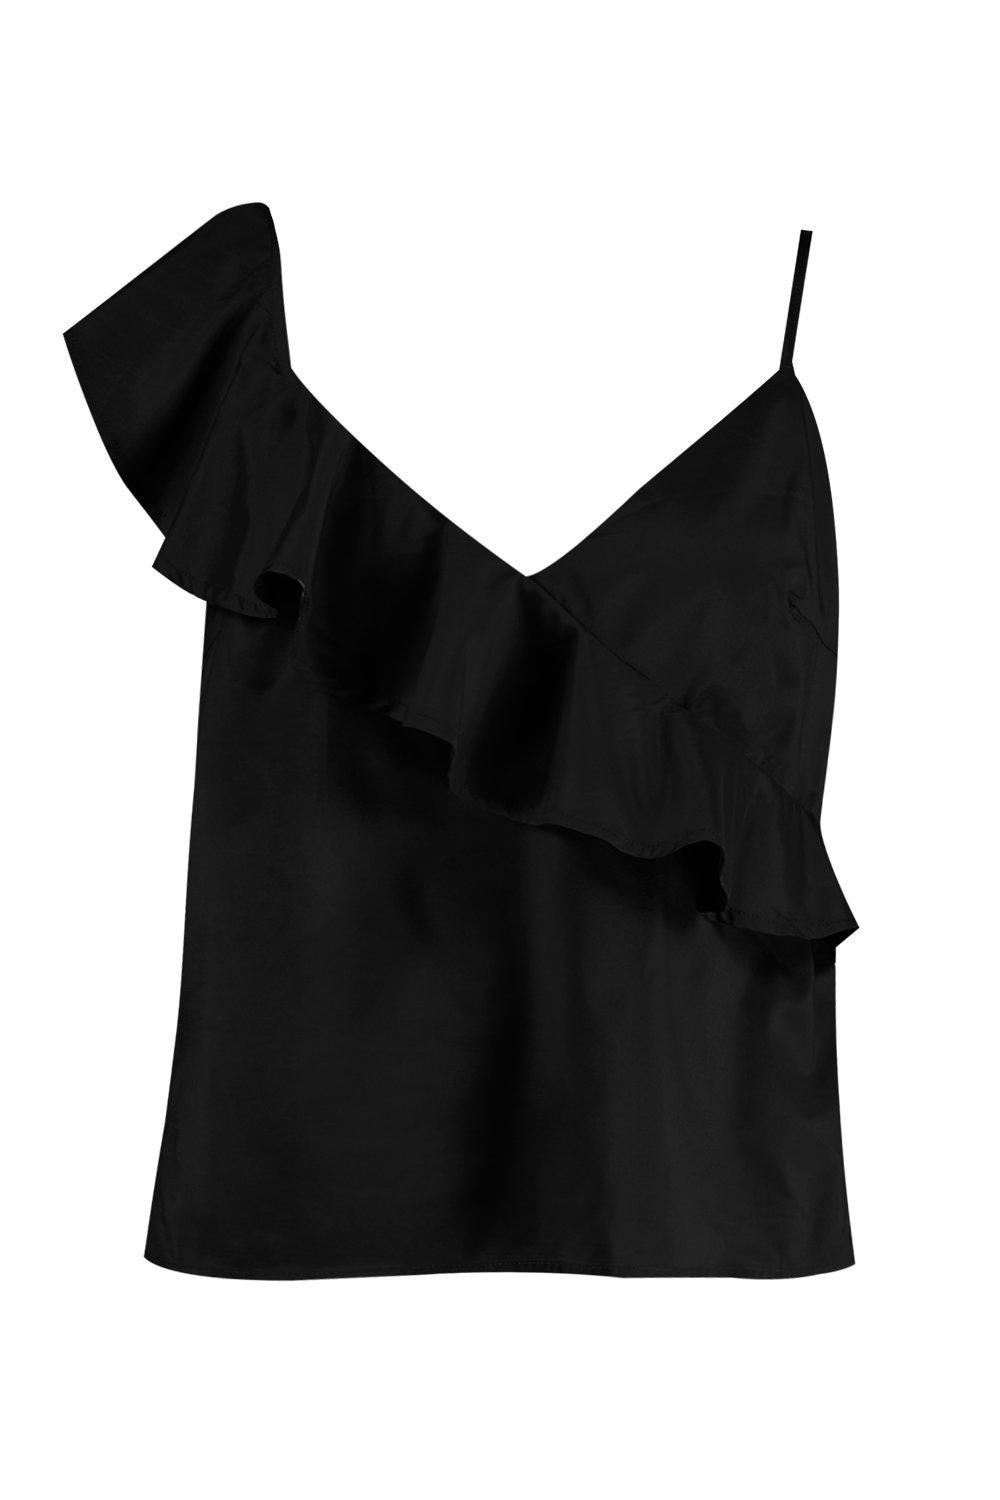 Annie Tie Sleeve black Top Cami Ruffle Front Plus w4qxW7dfOw